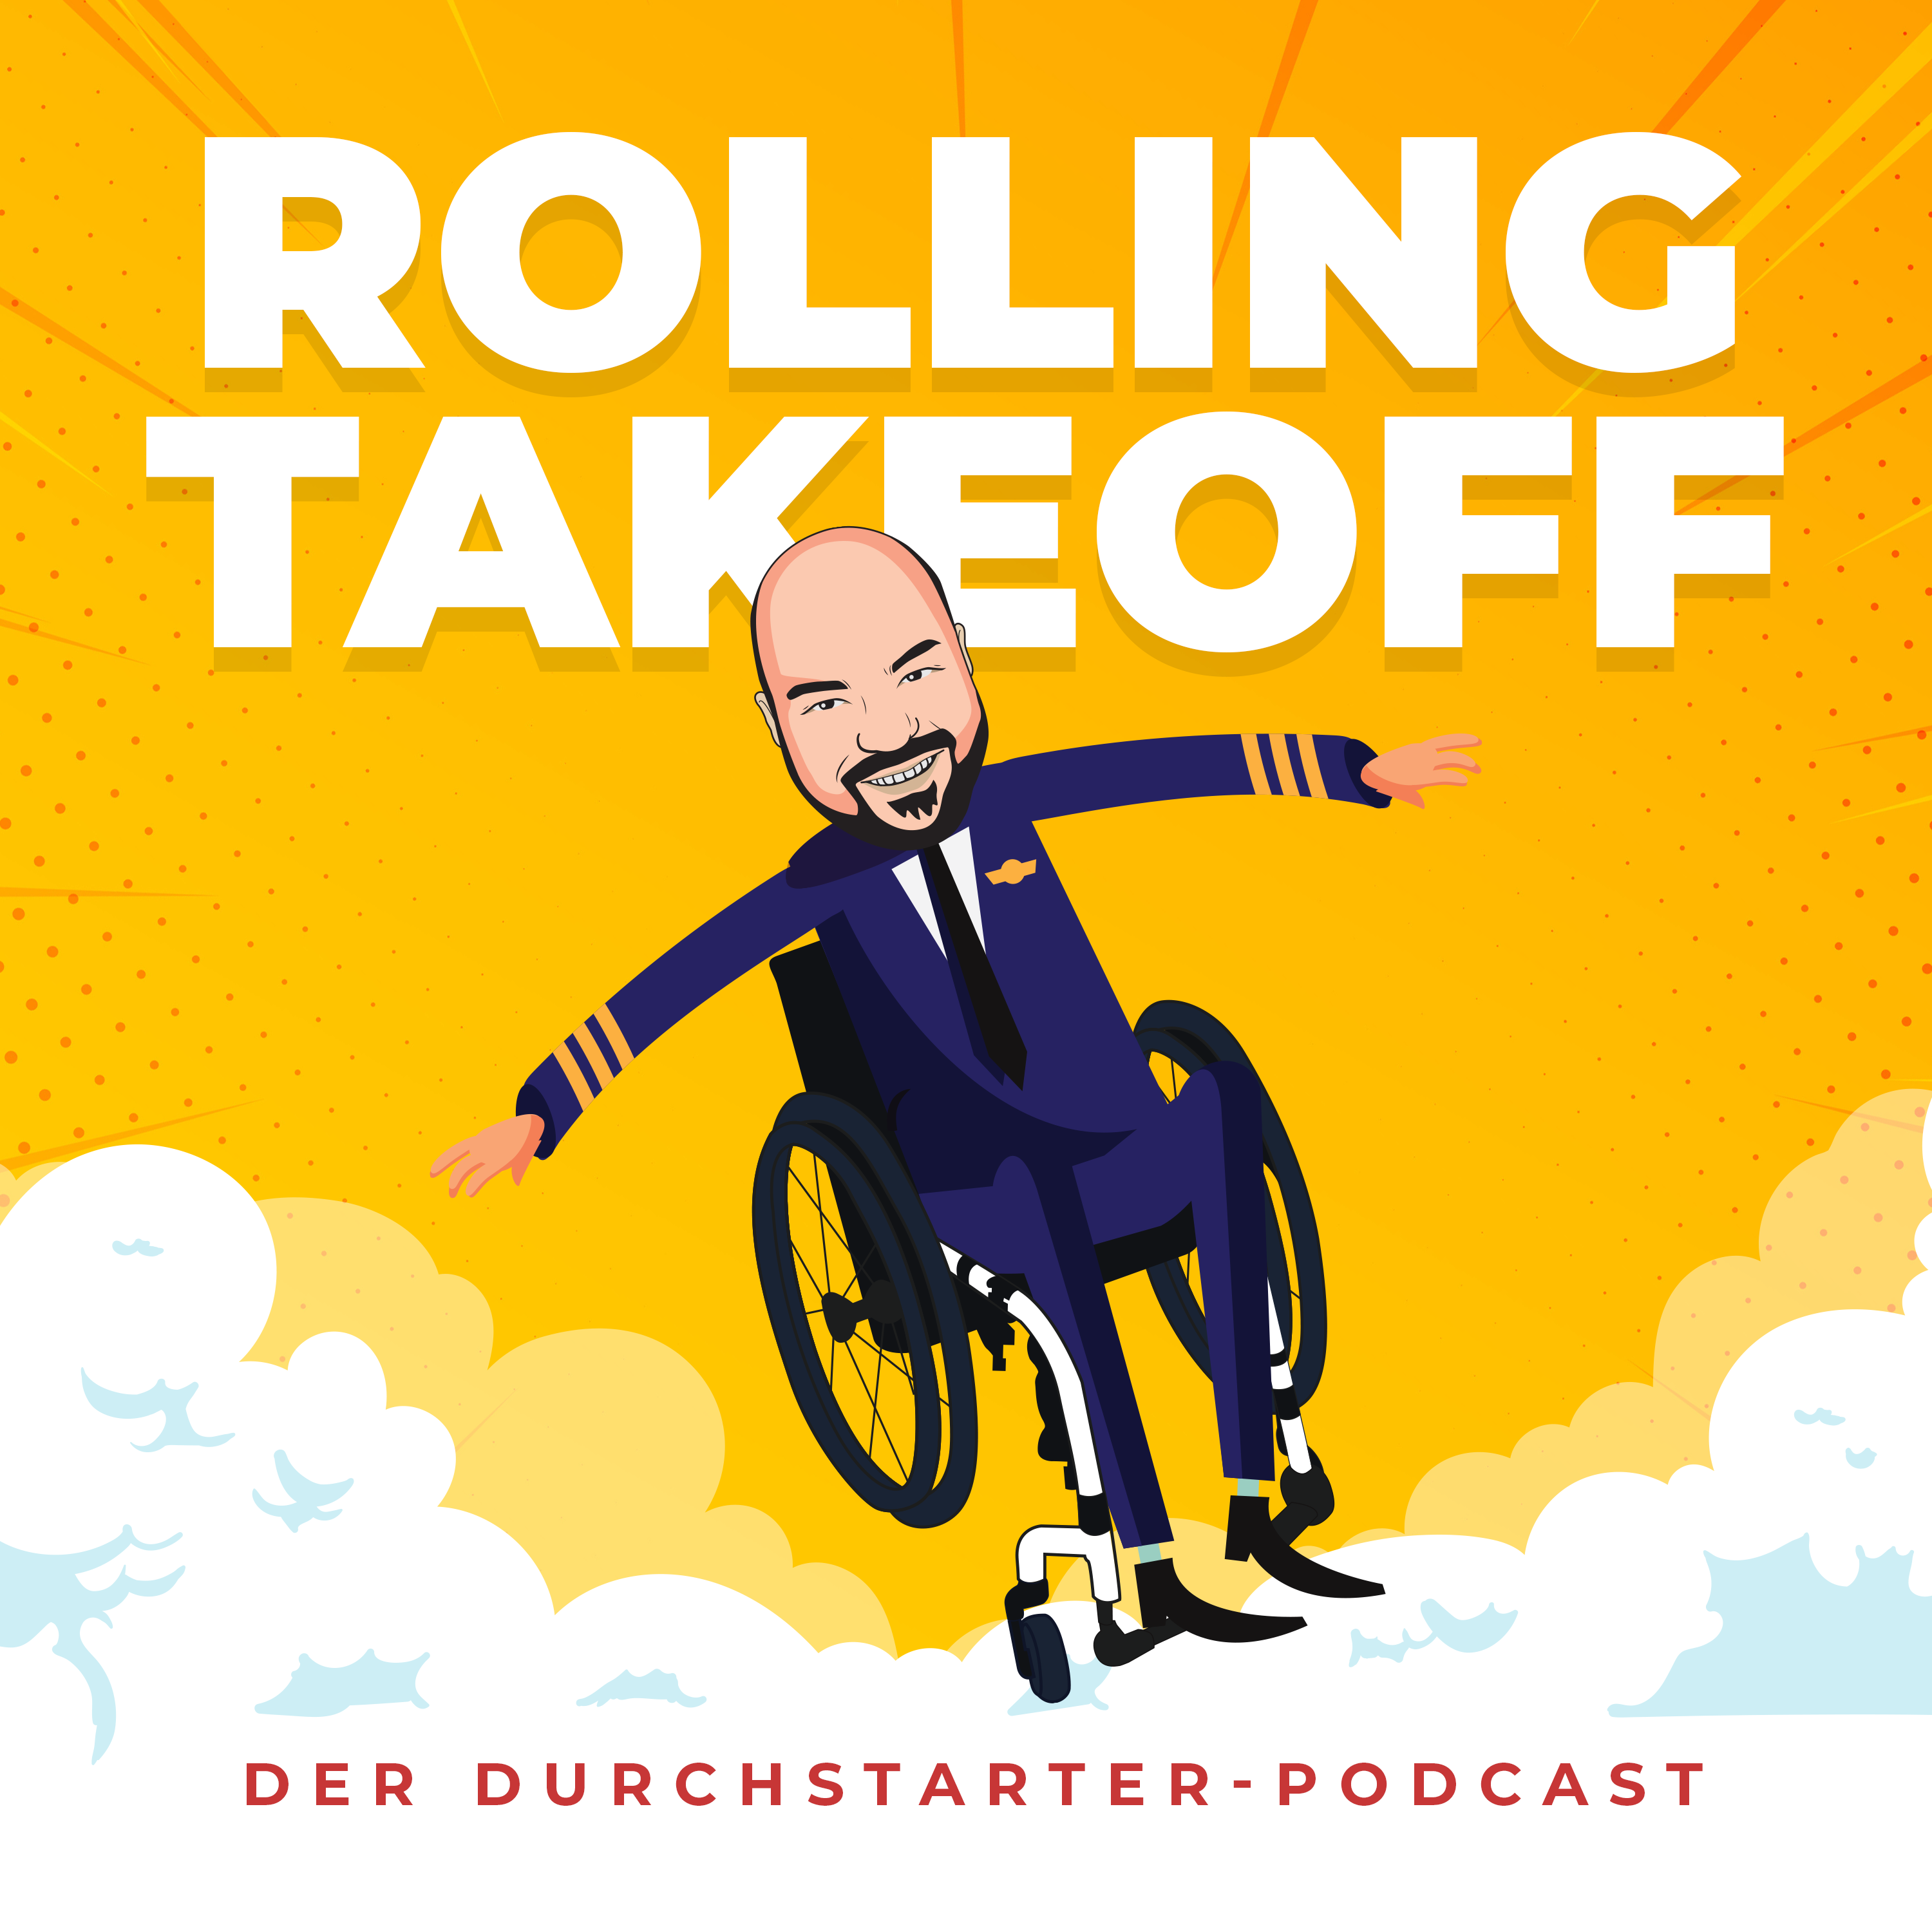 Pop art style podcast cover with a flying wheelchair